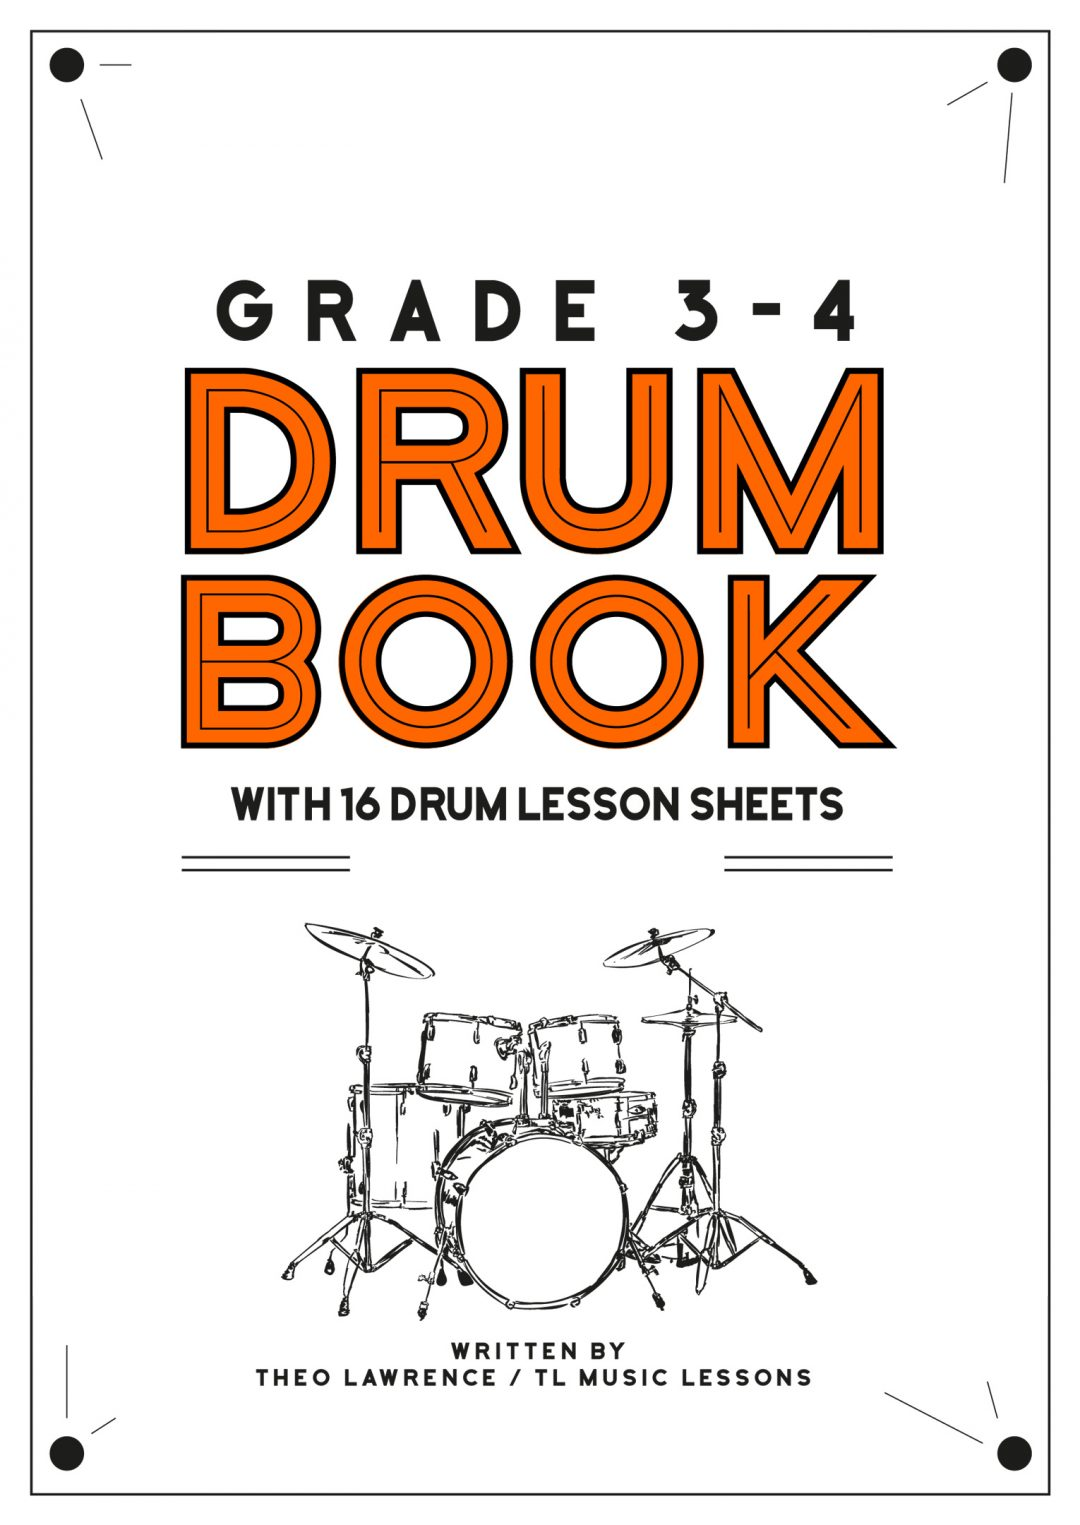 (Premium) – Grade 3-4 Drum Book with 17 Drum Lesson Sheets